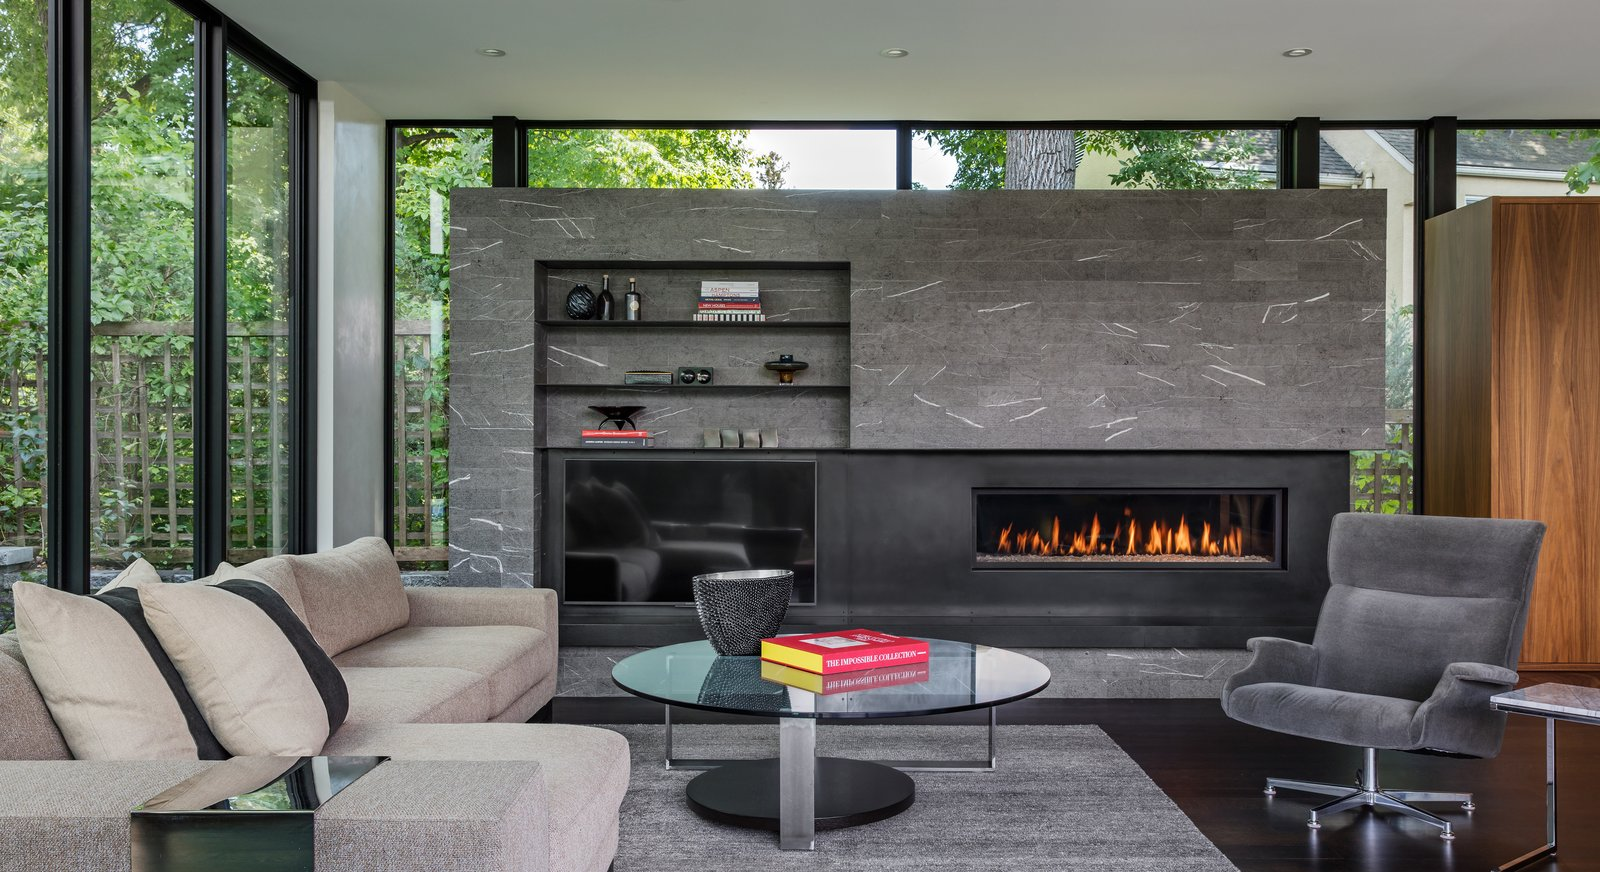 Tagged: Living Room, Ribbon Fireplace, Corner Fireplace, Coffee Tables, Gas Burning Fireplace, Sectional, Bookcase, Recliner, and Dark Hardwood Floor.  Calhoun Pavilions Residence by Peterssen/Keller Architecture